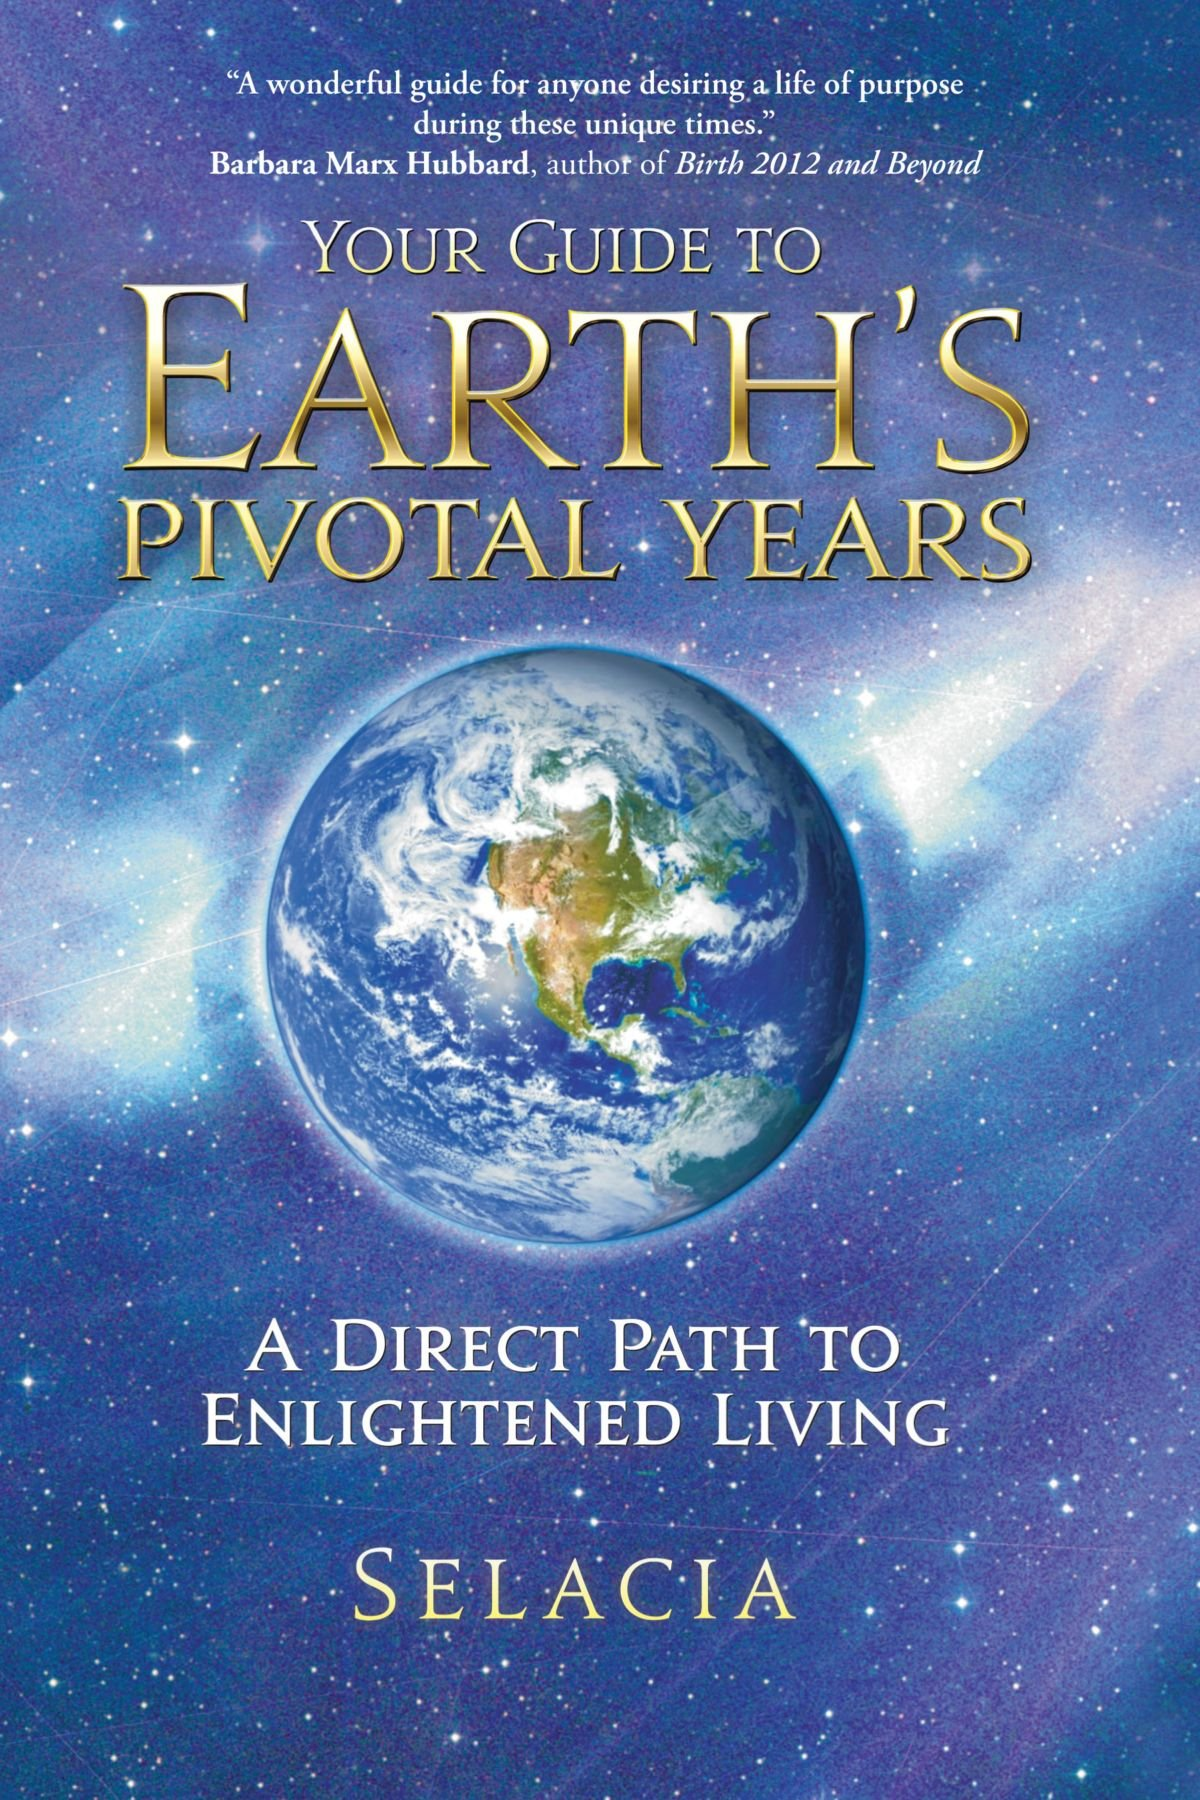 Download Your Guide To Earth's Pivotal Years: A Direct Path To Enlightened Living pdf